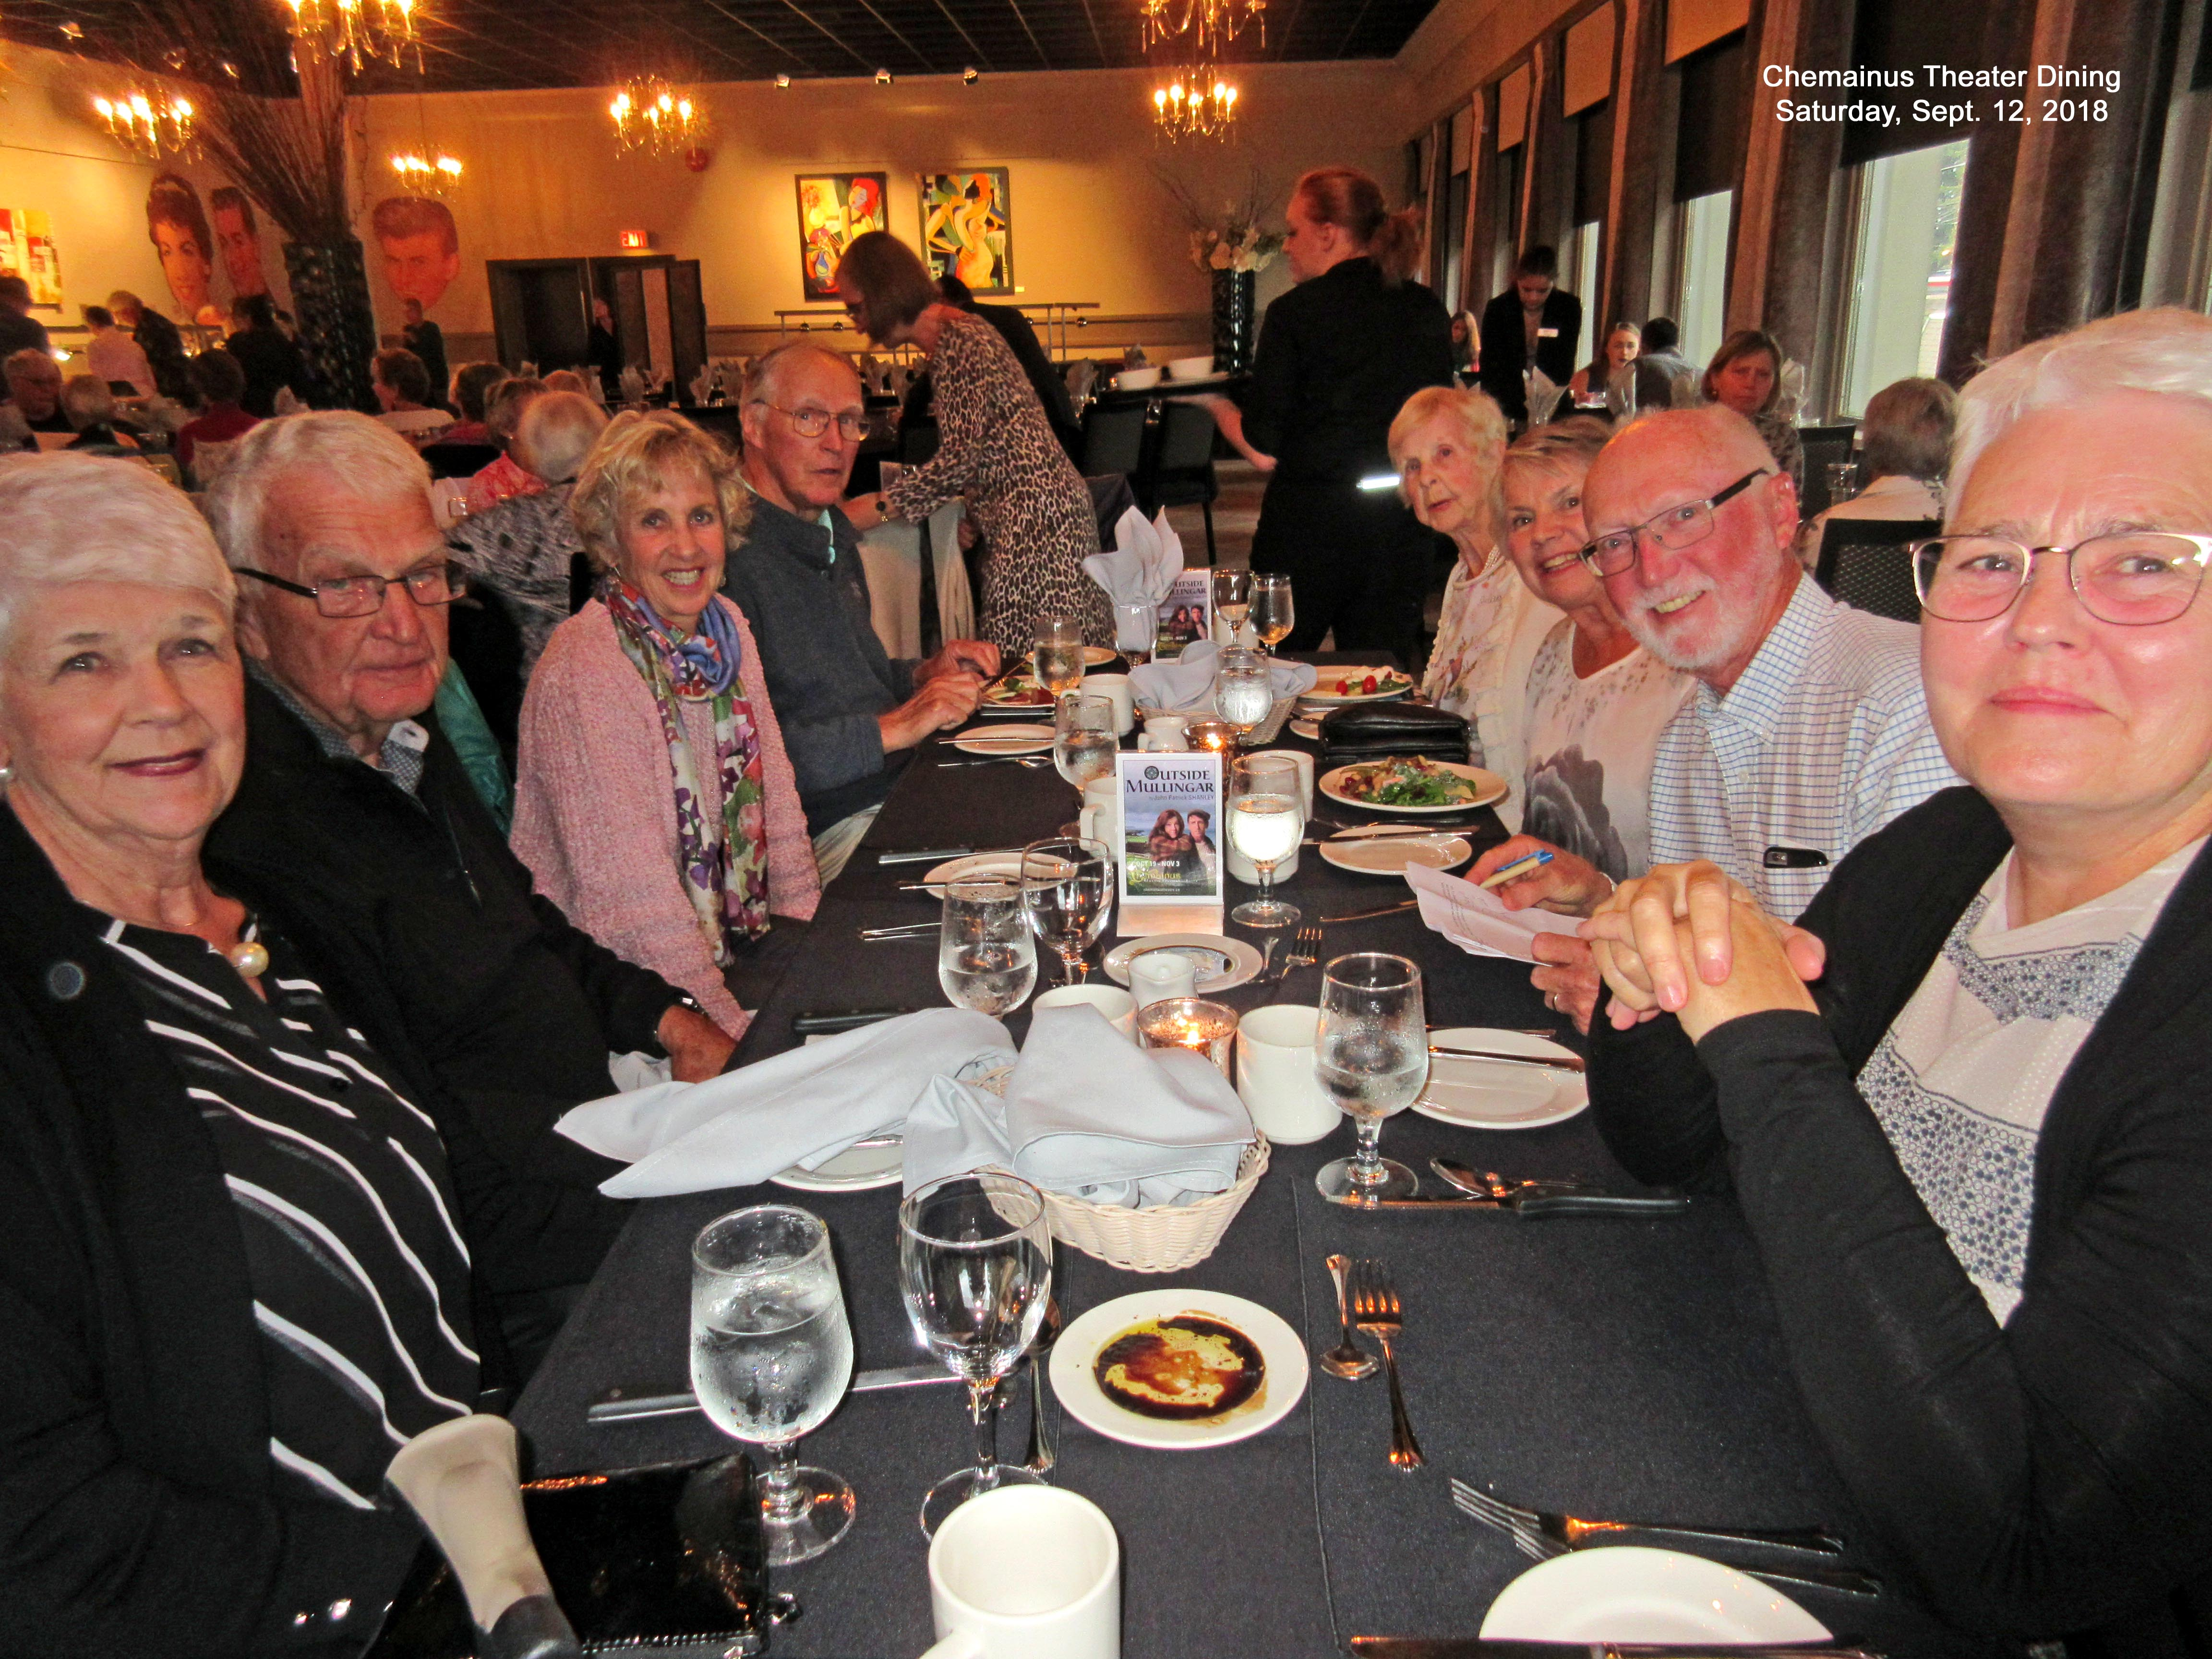 Table 1-Chemainus Theater.